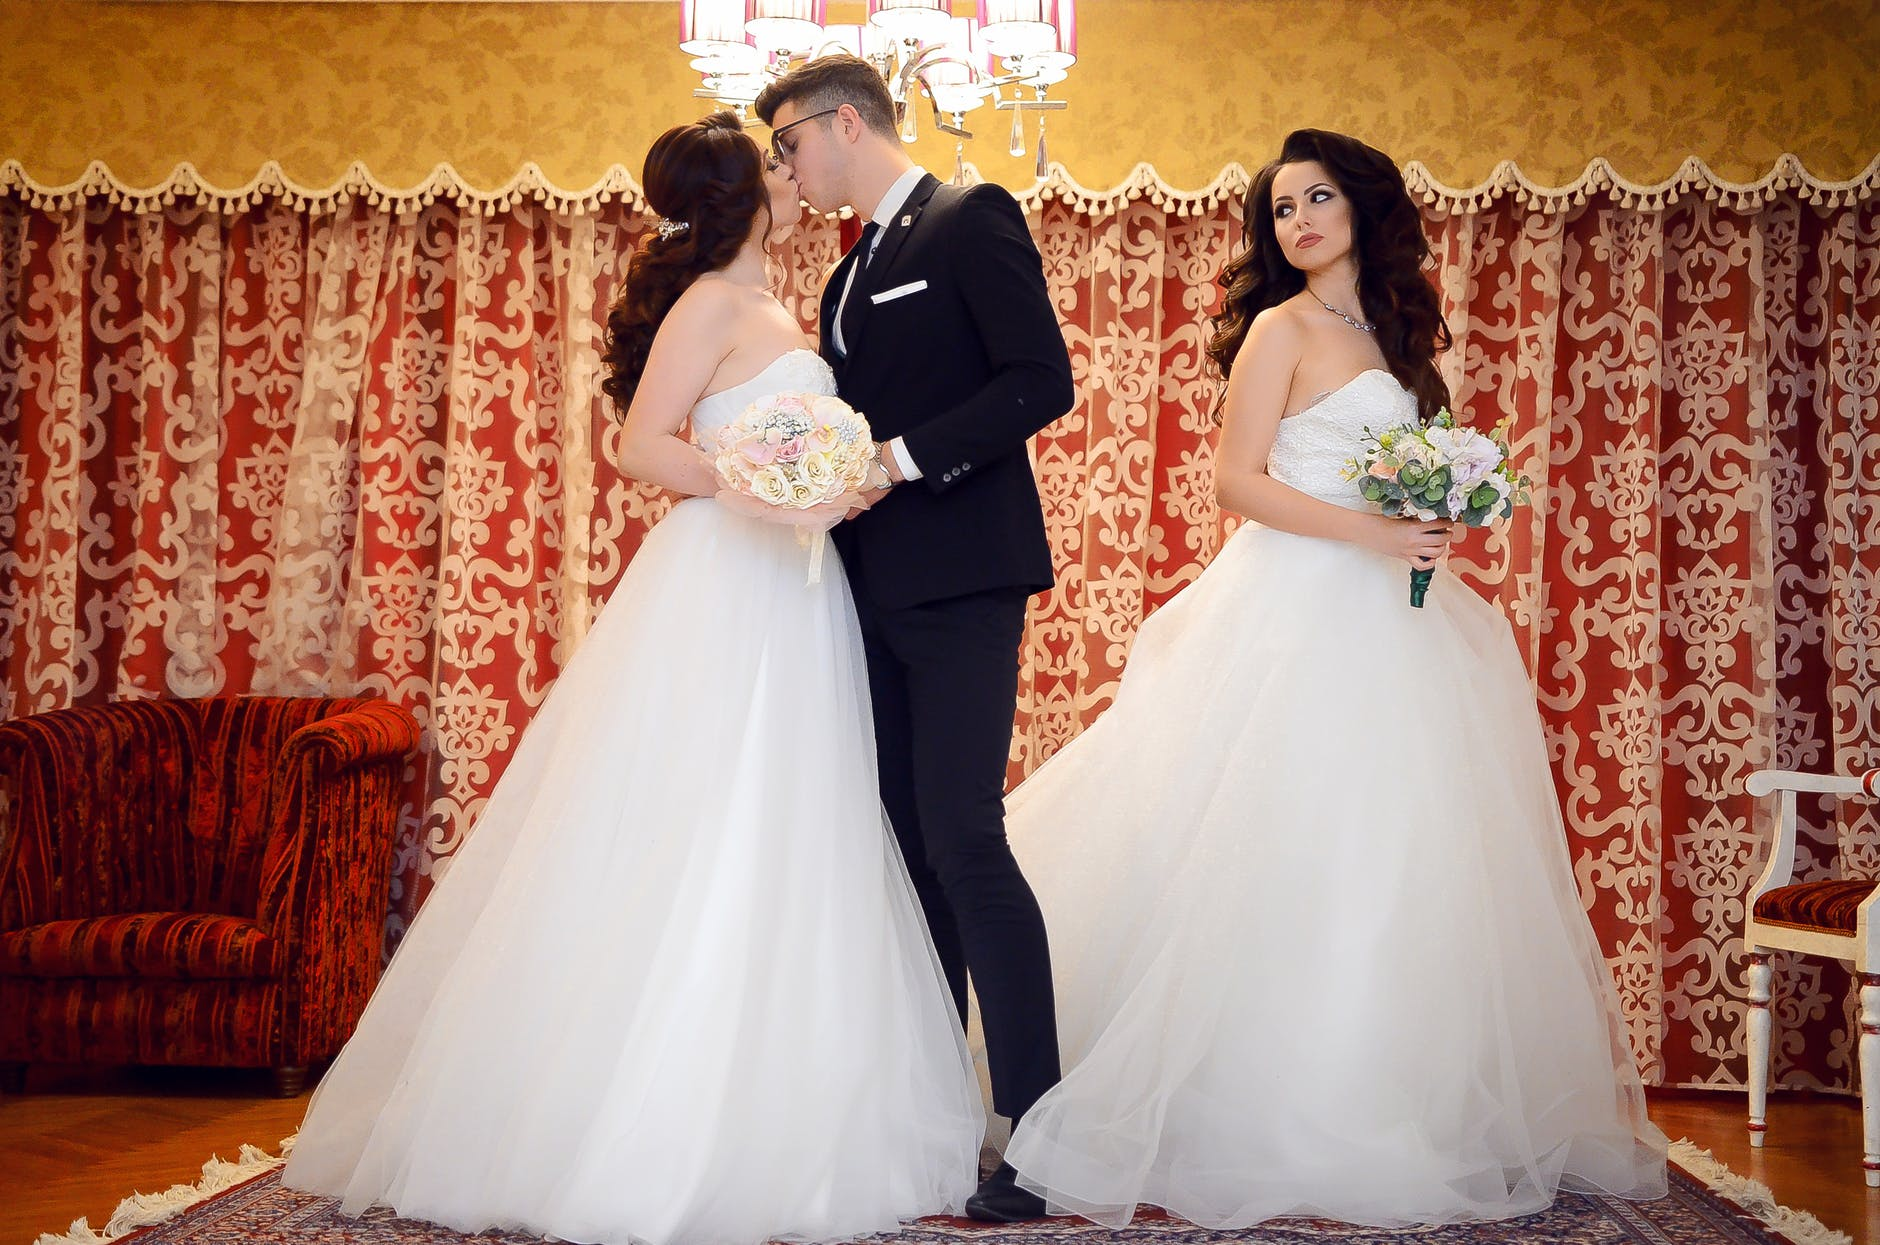 Two women in bridal gowns, one kissing the groom, the other lookig back at them